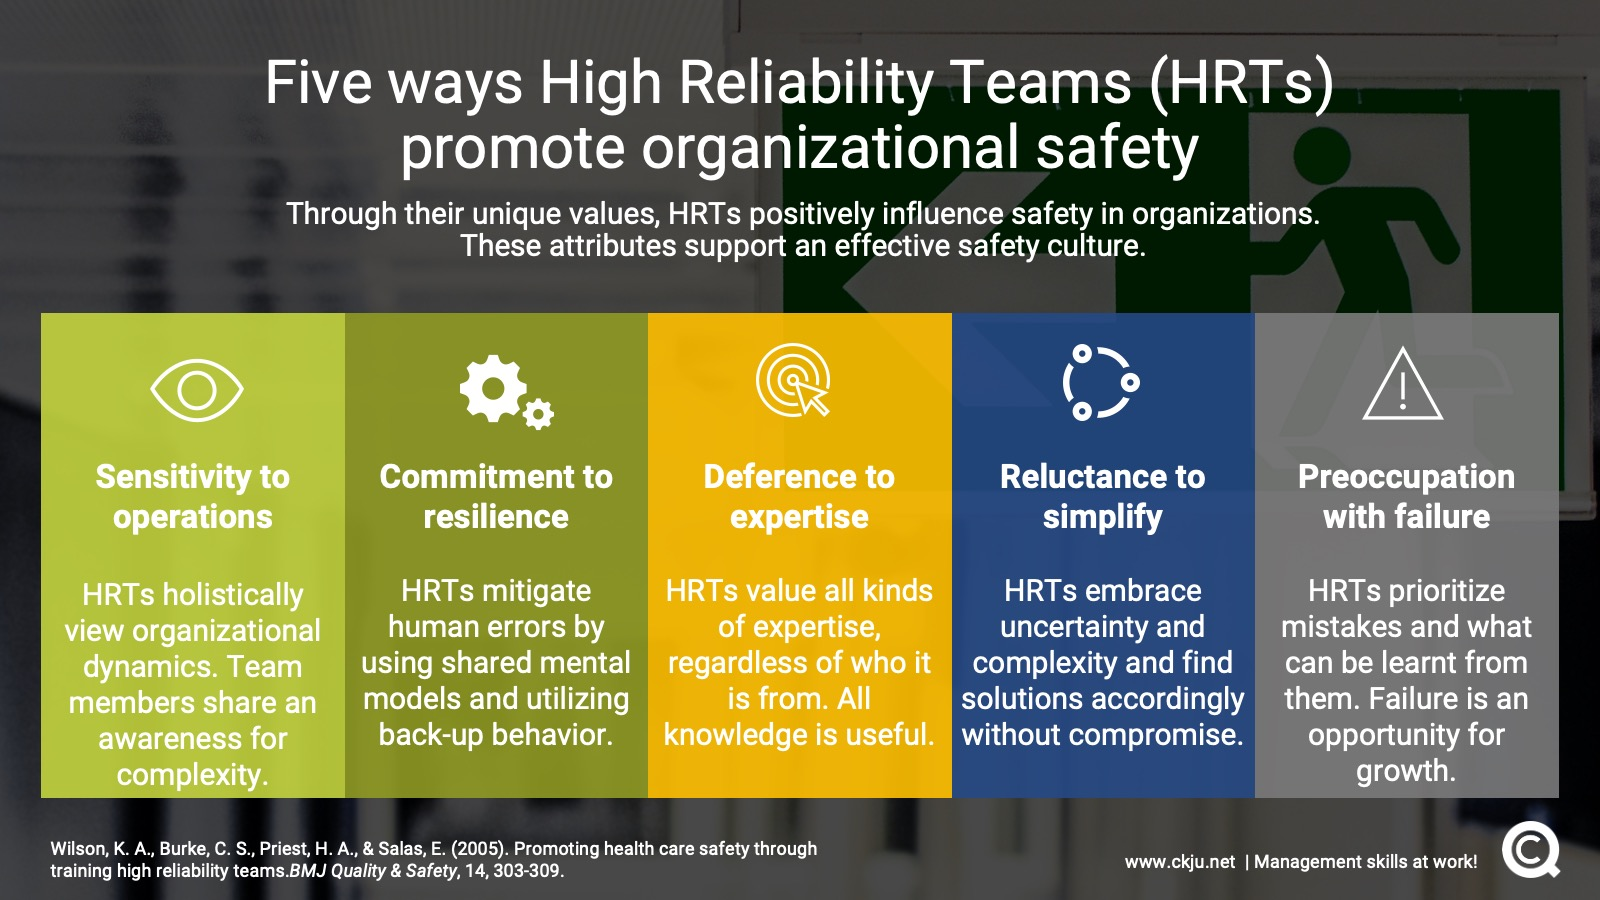 Five ways High Reliability Teams (HRTs) promote organizational safety